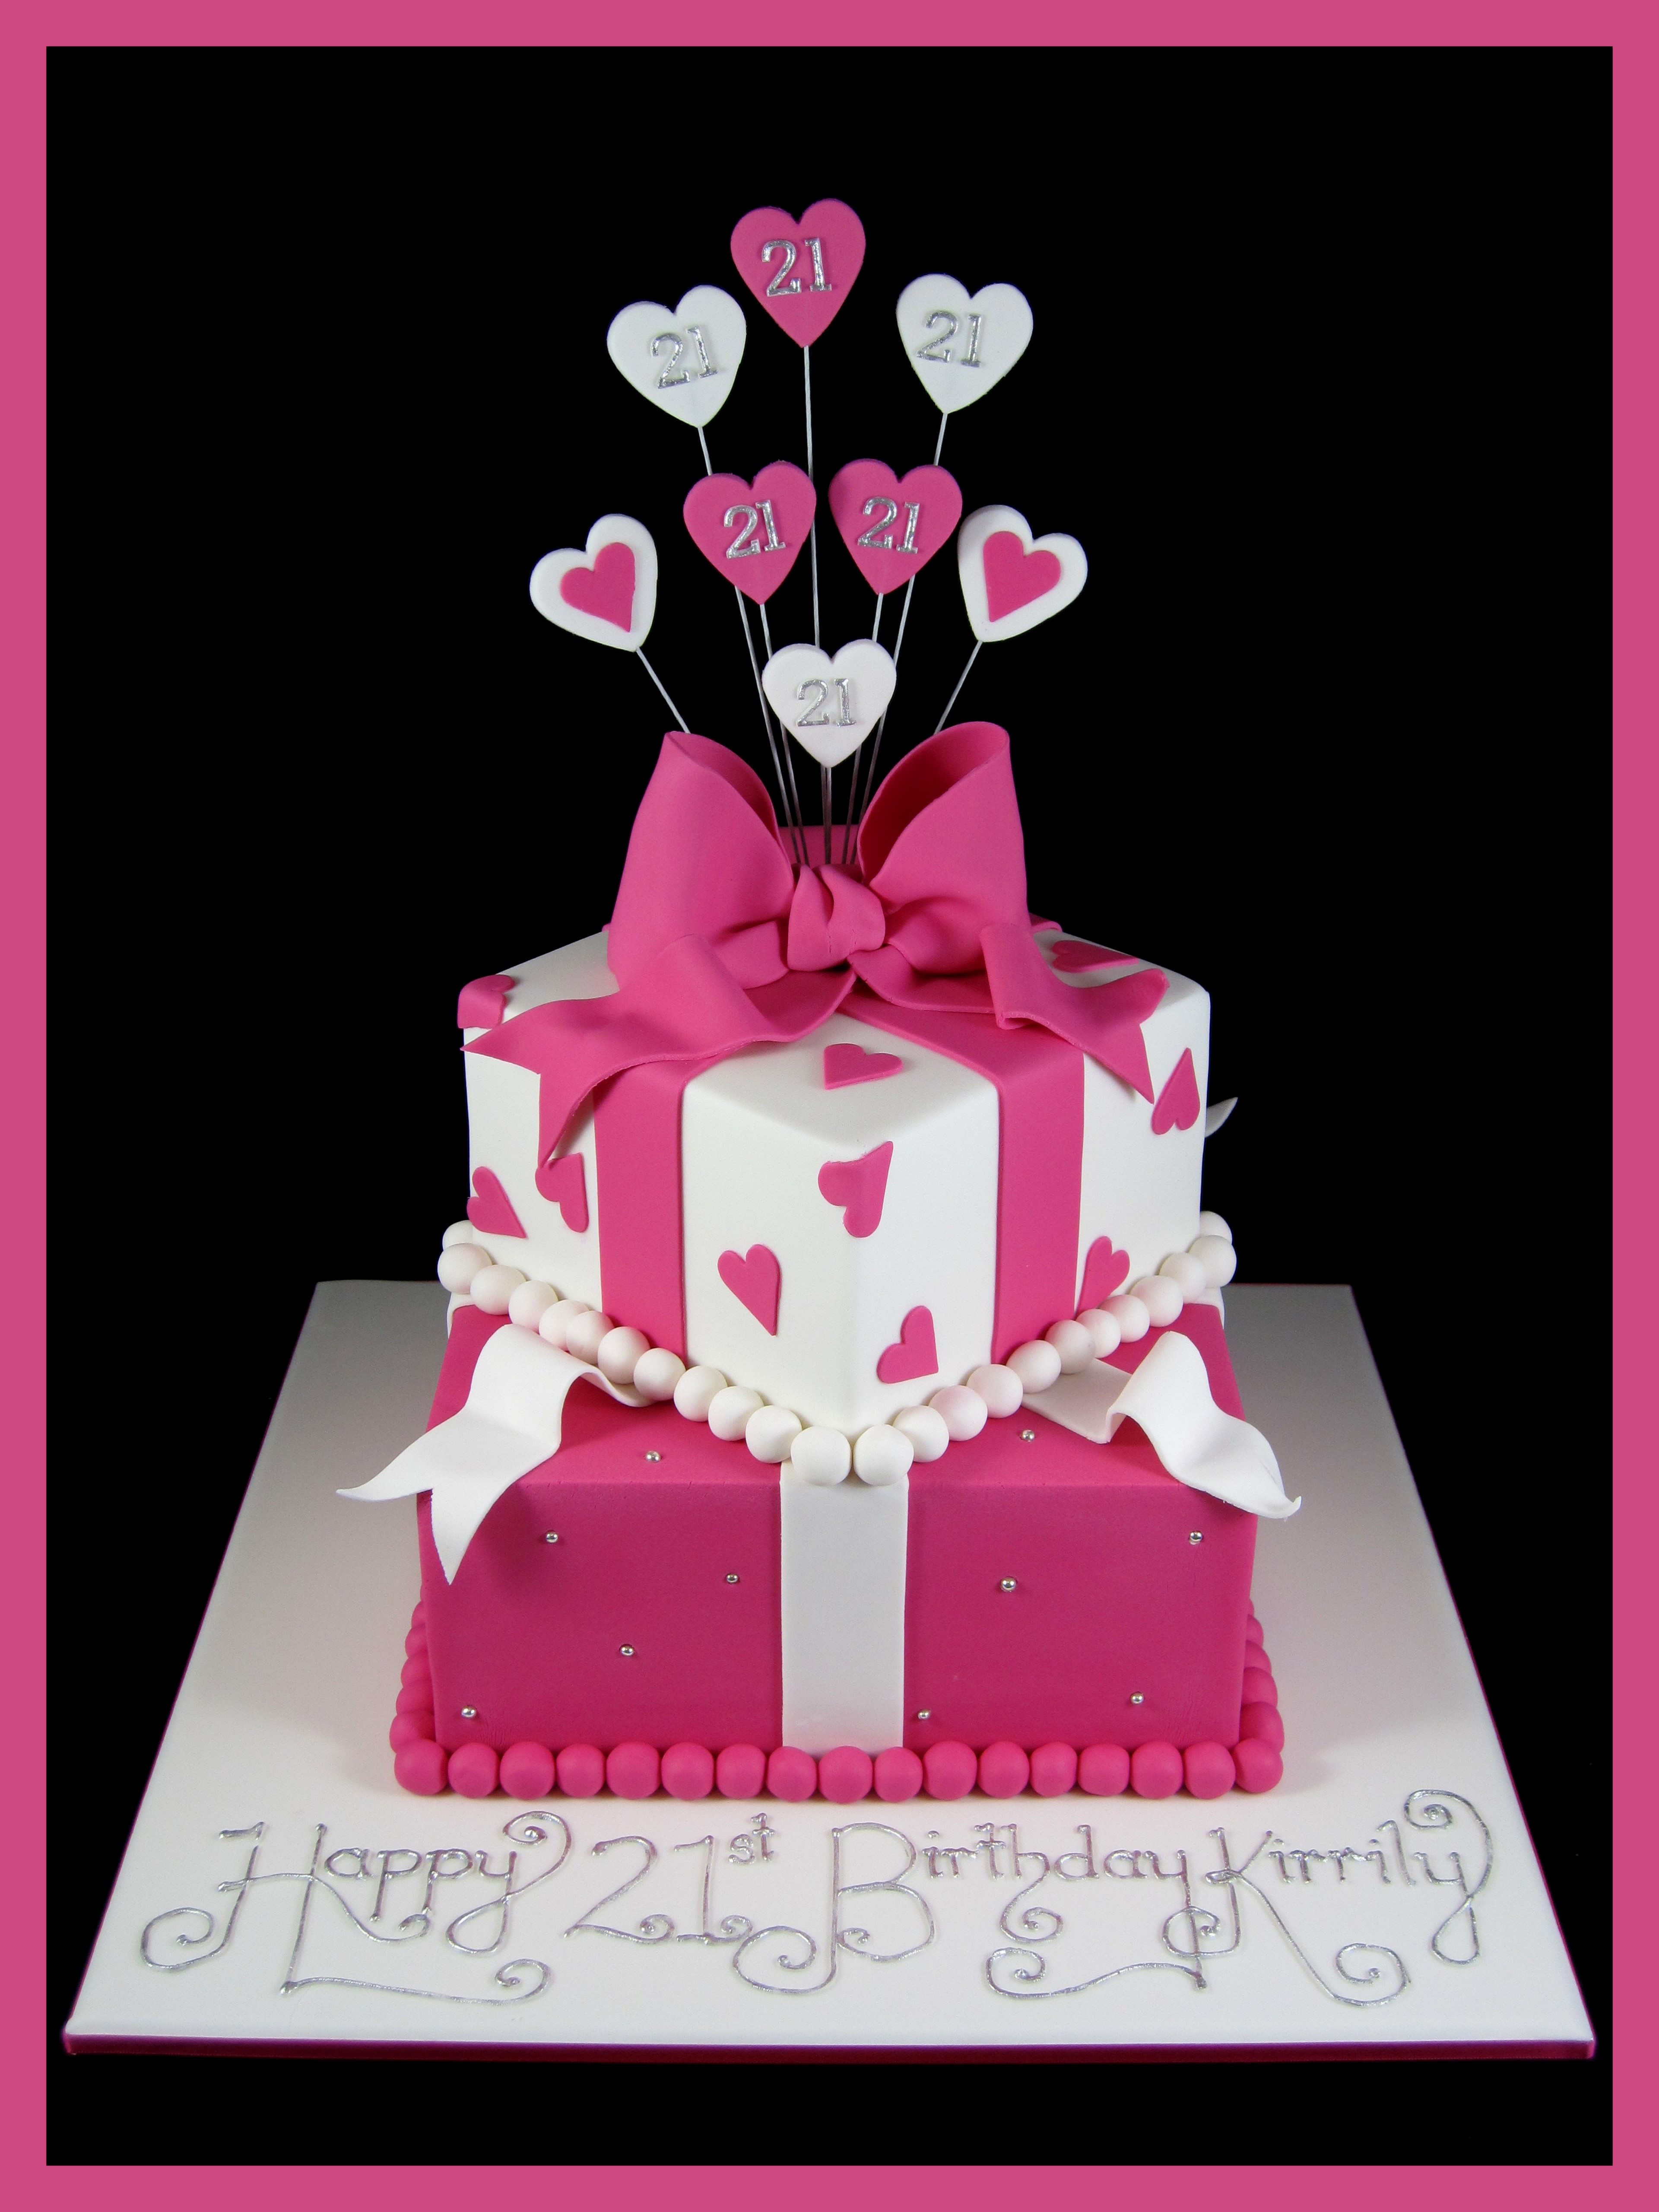 Best ideas about 21st Birthday Cake . Save or Pin 21st birthday for girls Now.